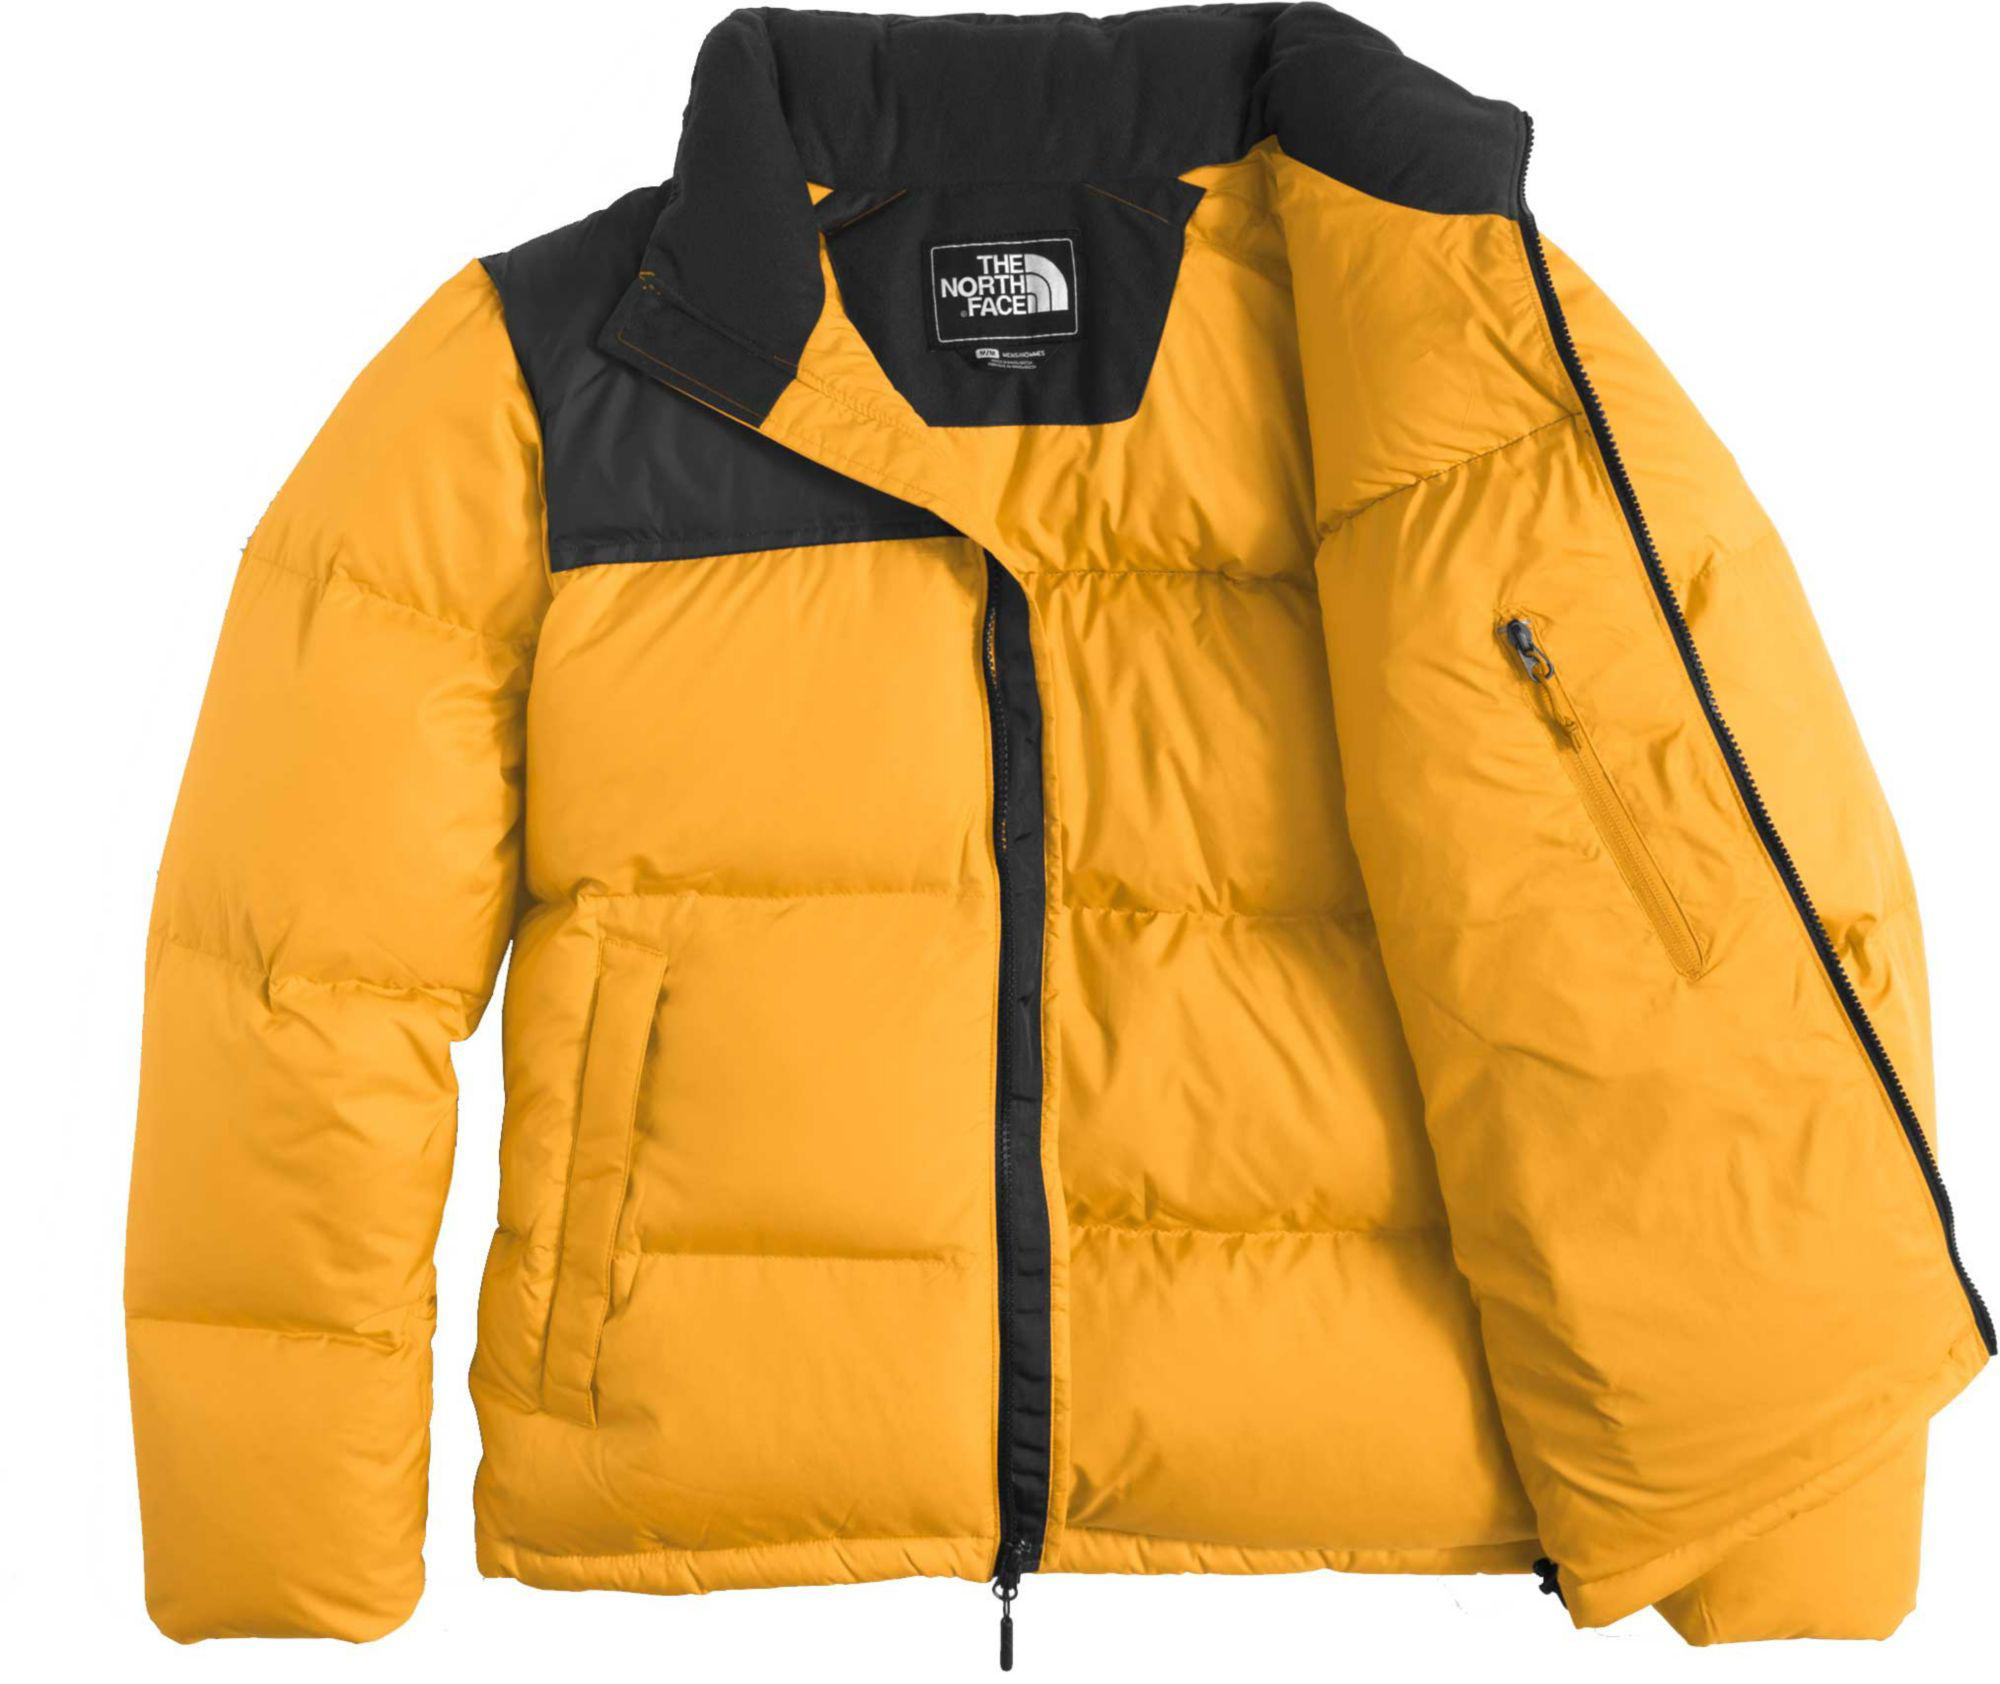 328cb3d171 ... usa lyst the north face novelty nuptse down jacket in yellow for men  f5ad5 0391e